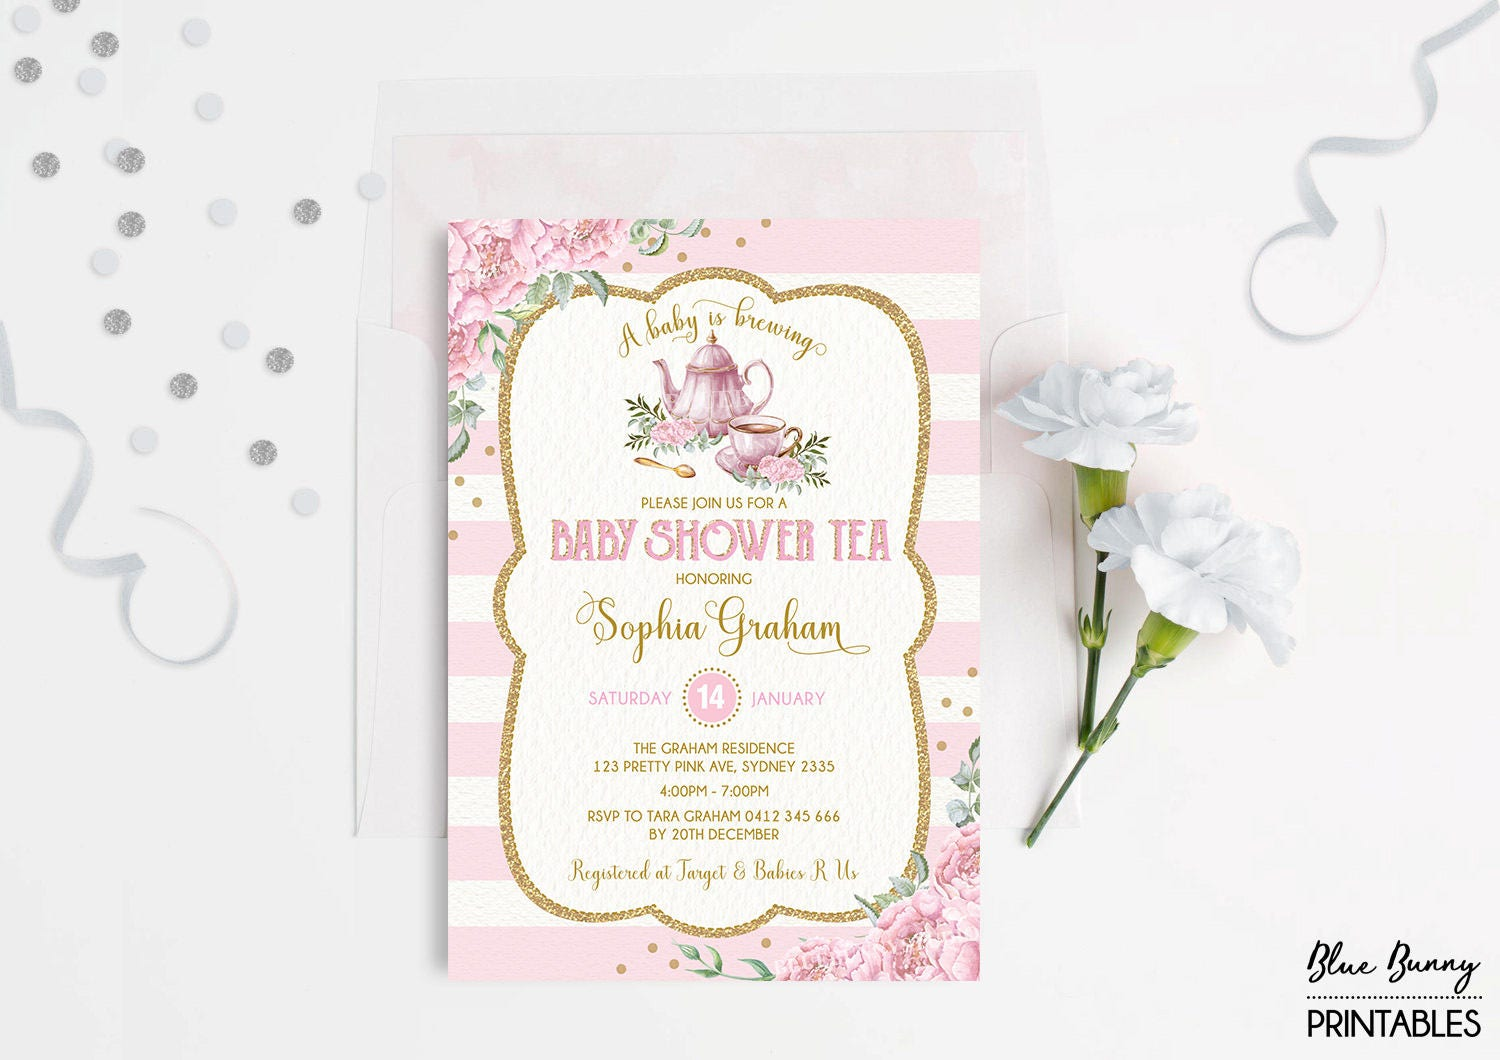 Baby Shower Tea Party Invitation. Pink Gold Floral Invite. | Etsy